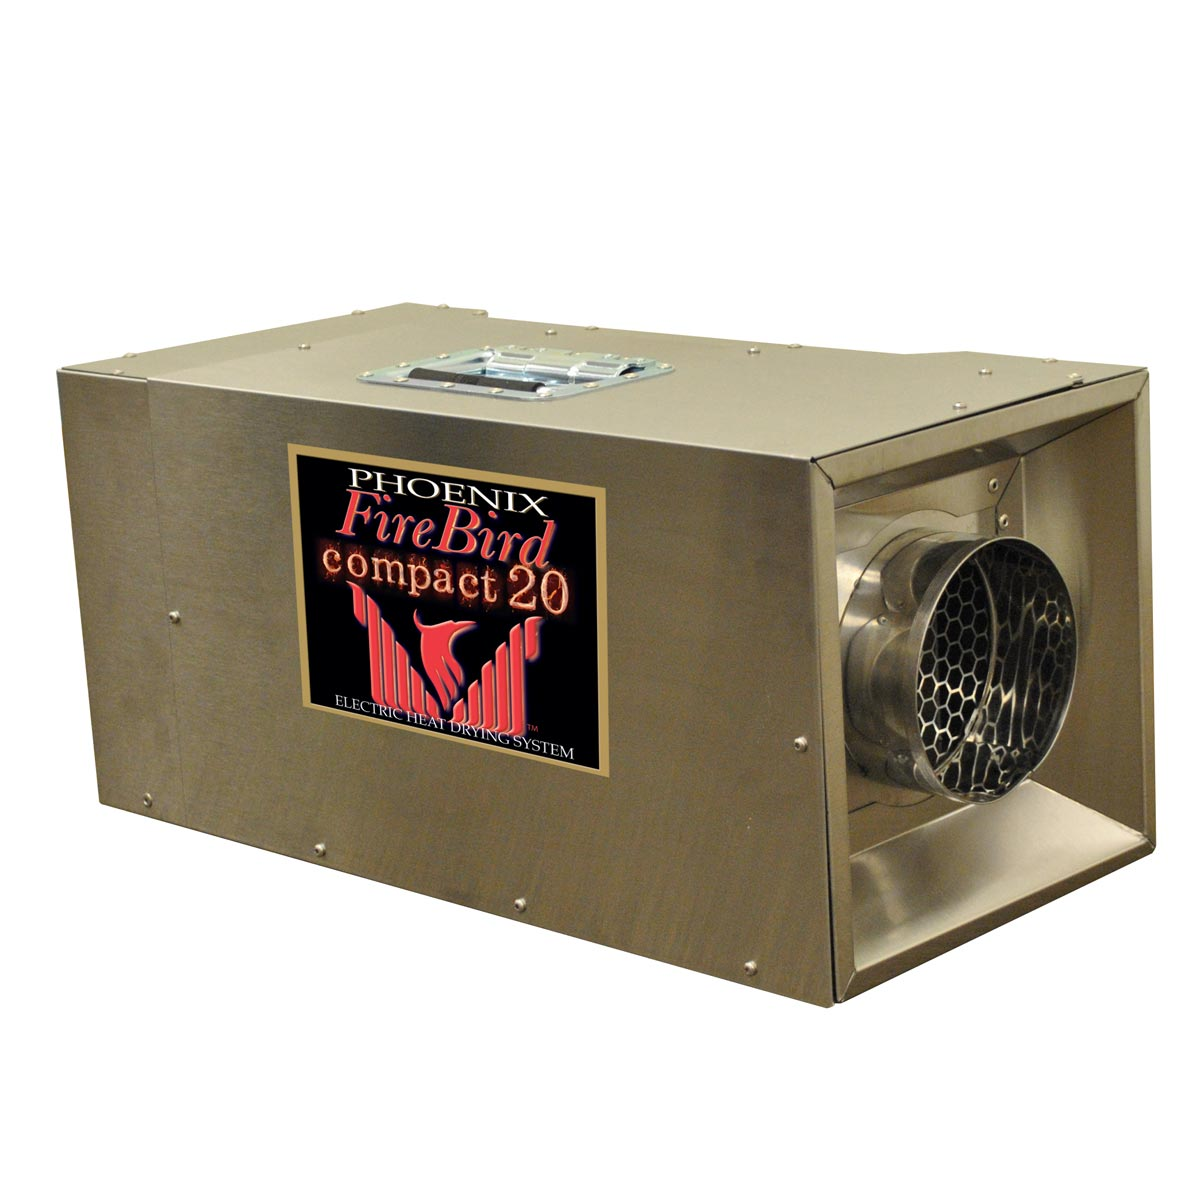 ThermaStor Phoenix Compact 20 Heater 4033450 FREIGHT INCLUDED AC300 Quest EHS 20 Pro 4033330